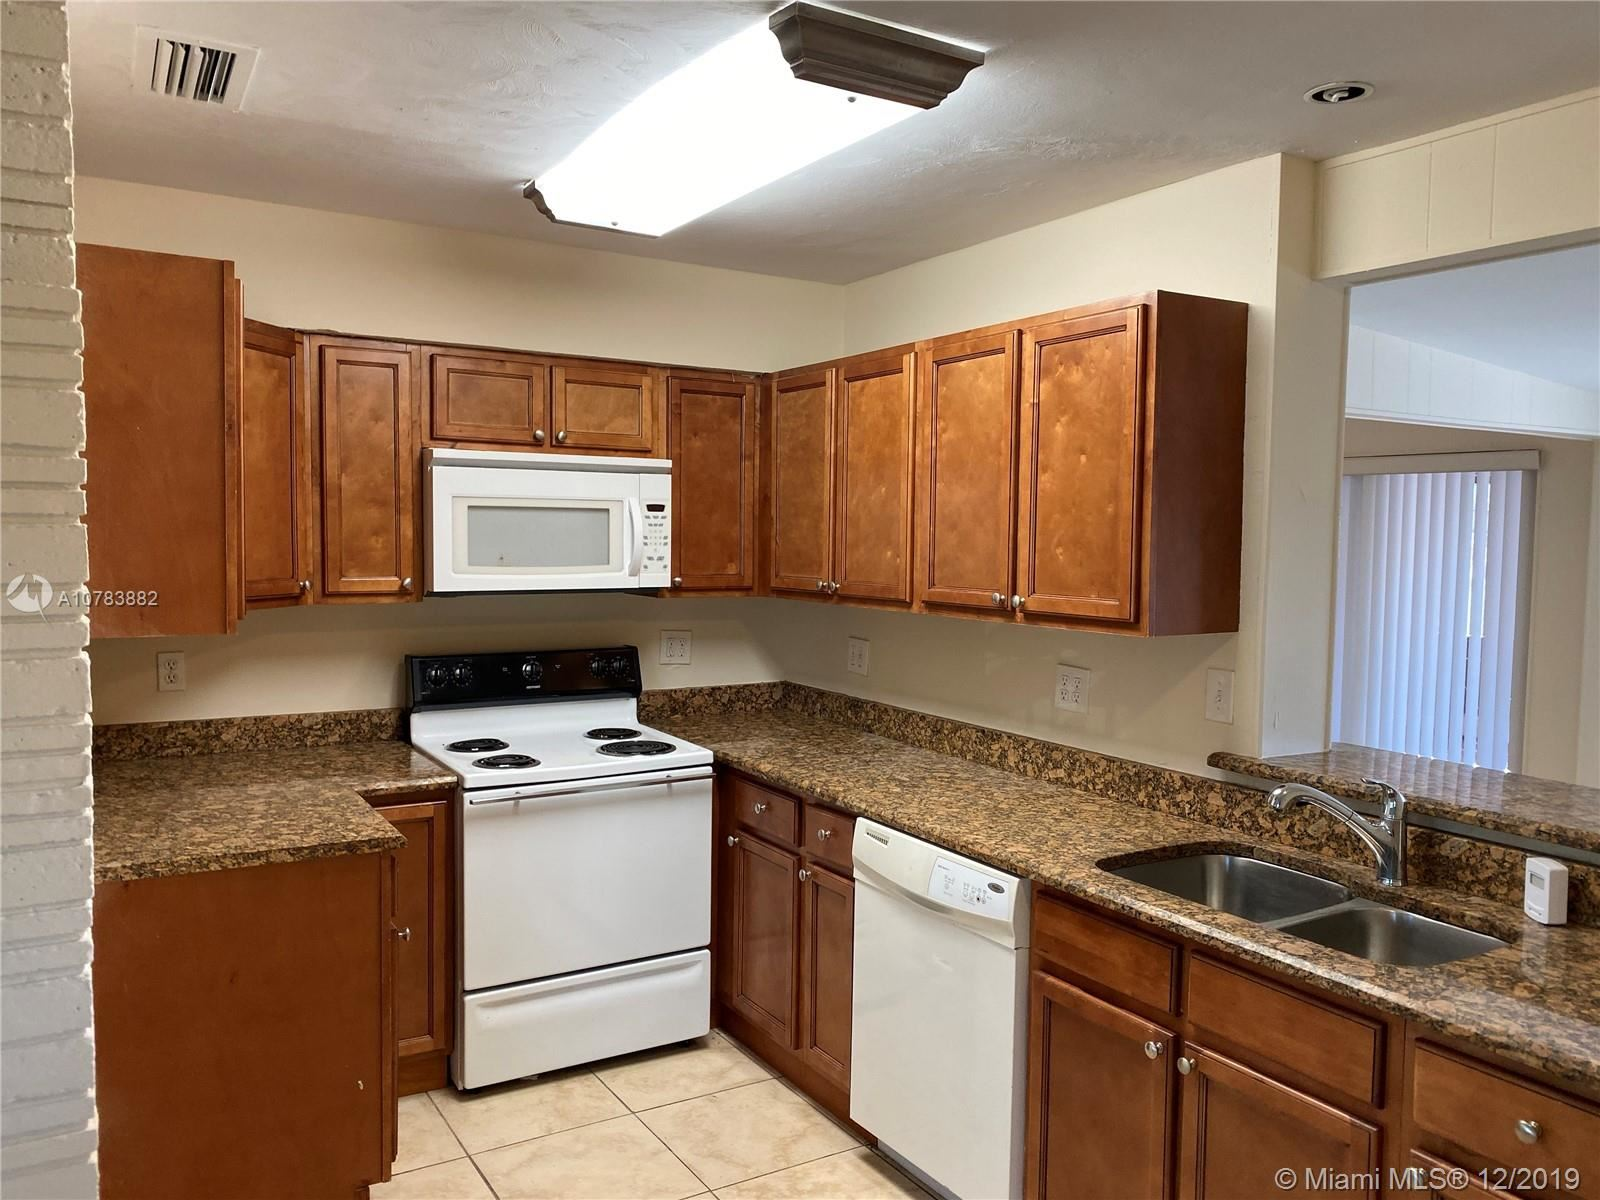 Photo of 3344 SW 19th St, Fort Lauderdale, FL 33312 (MLS # A10783882)